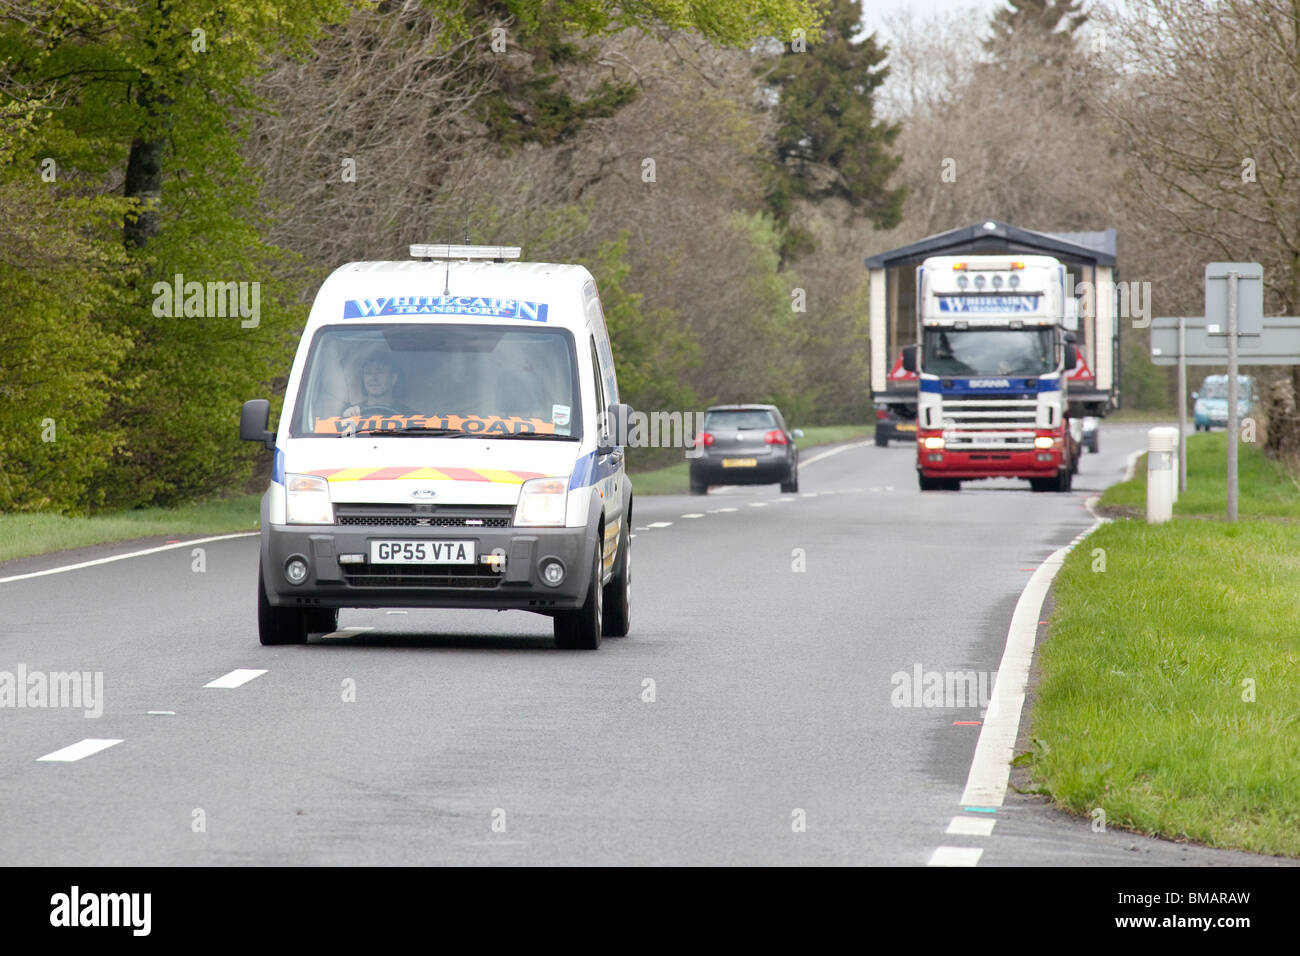 Abnormal load wide load escort vehicle warning on coming traffic with articulated lorry carrying a wide load behind - Stock Image